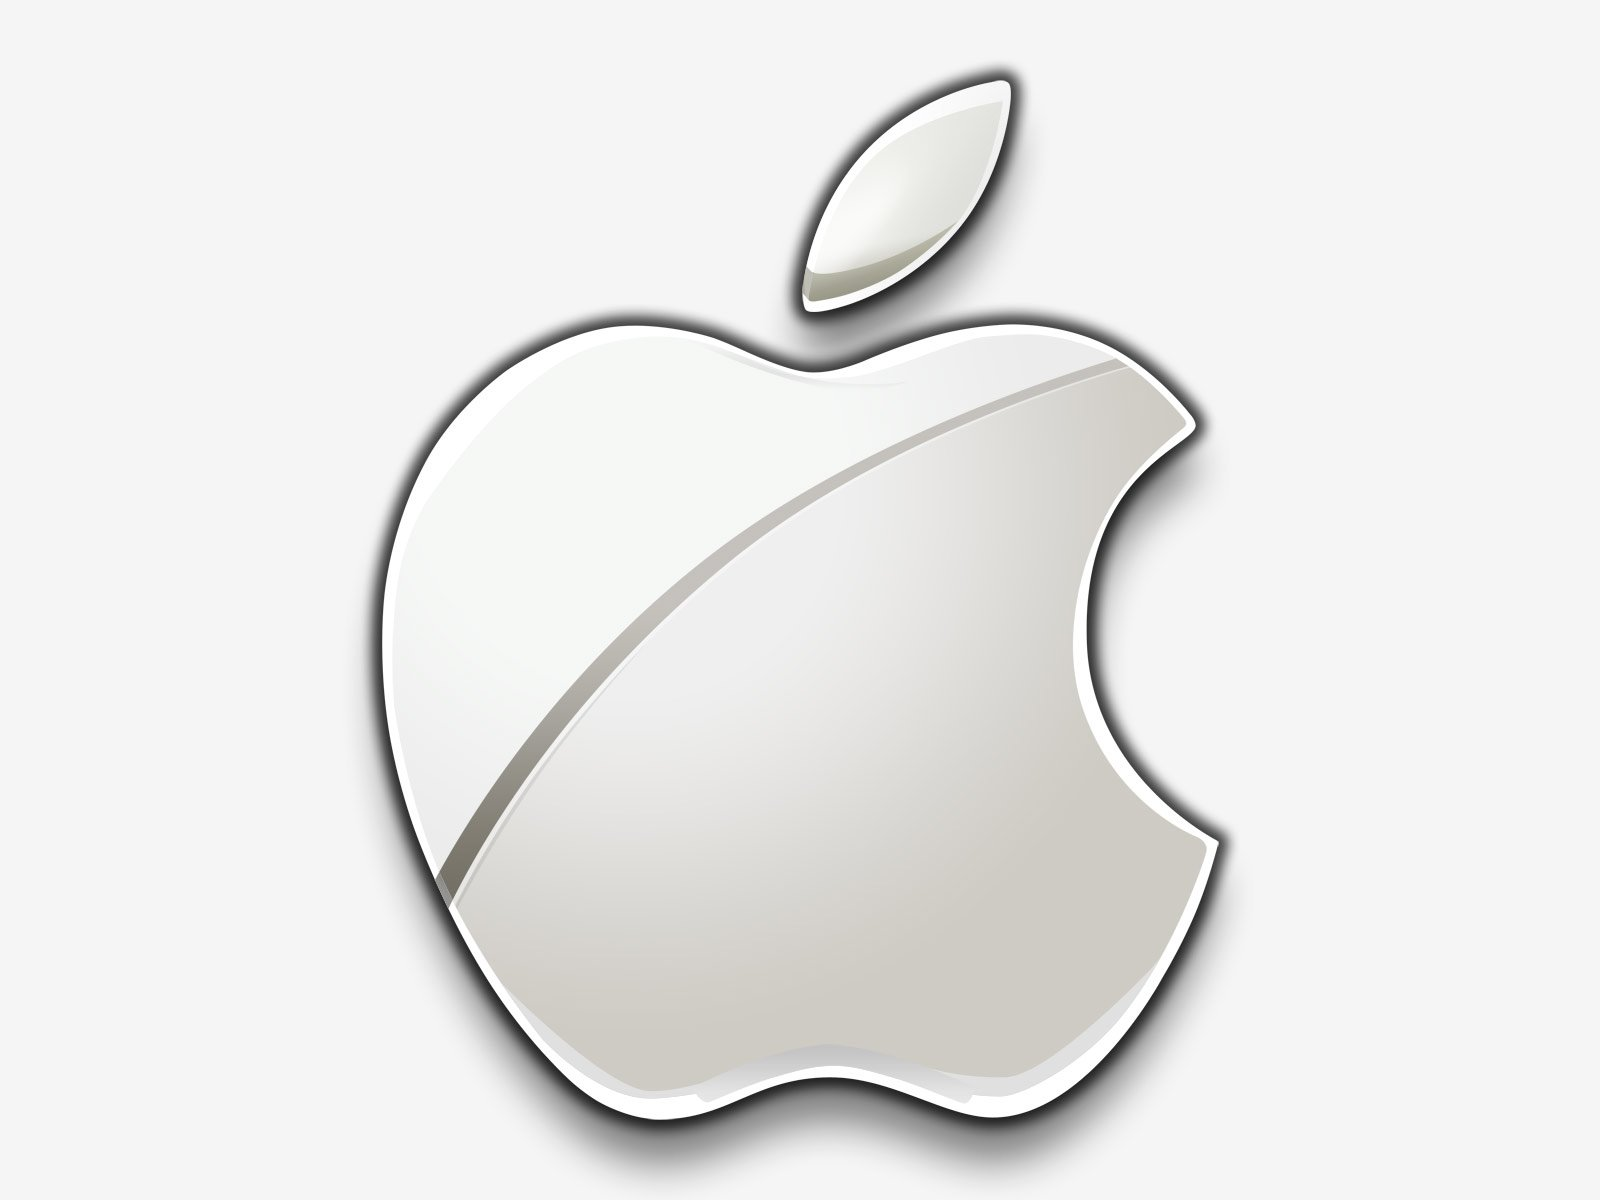 Meaning iPhone logo and symbol.